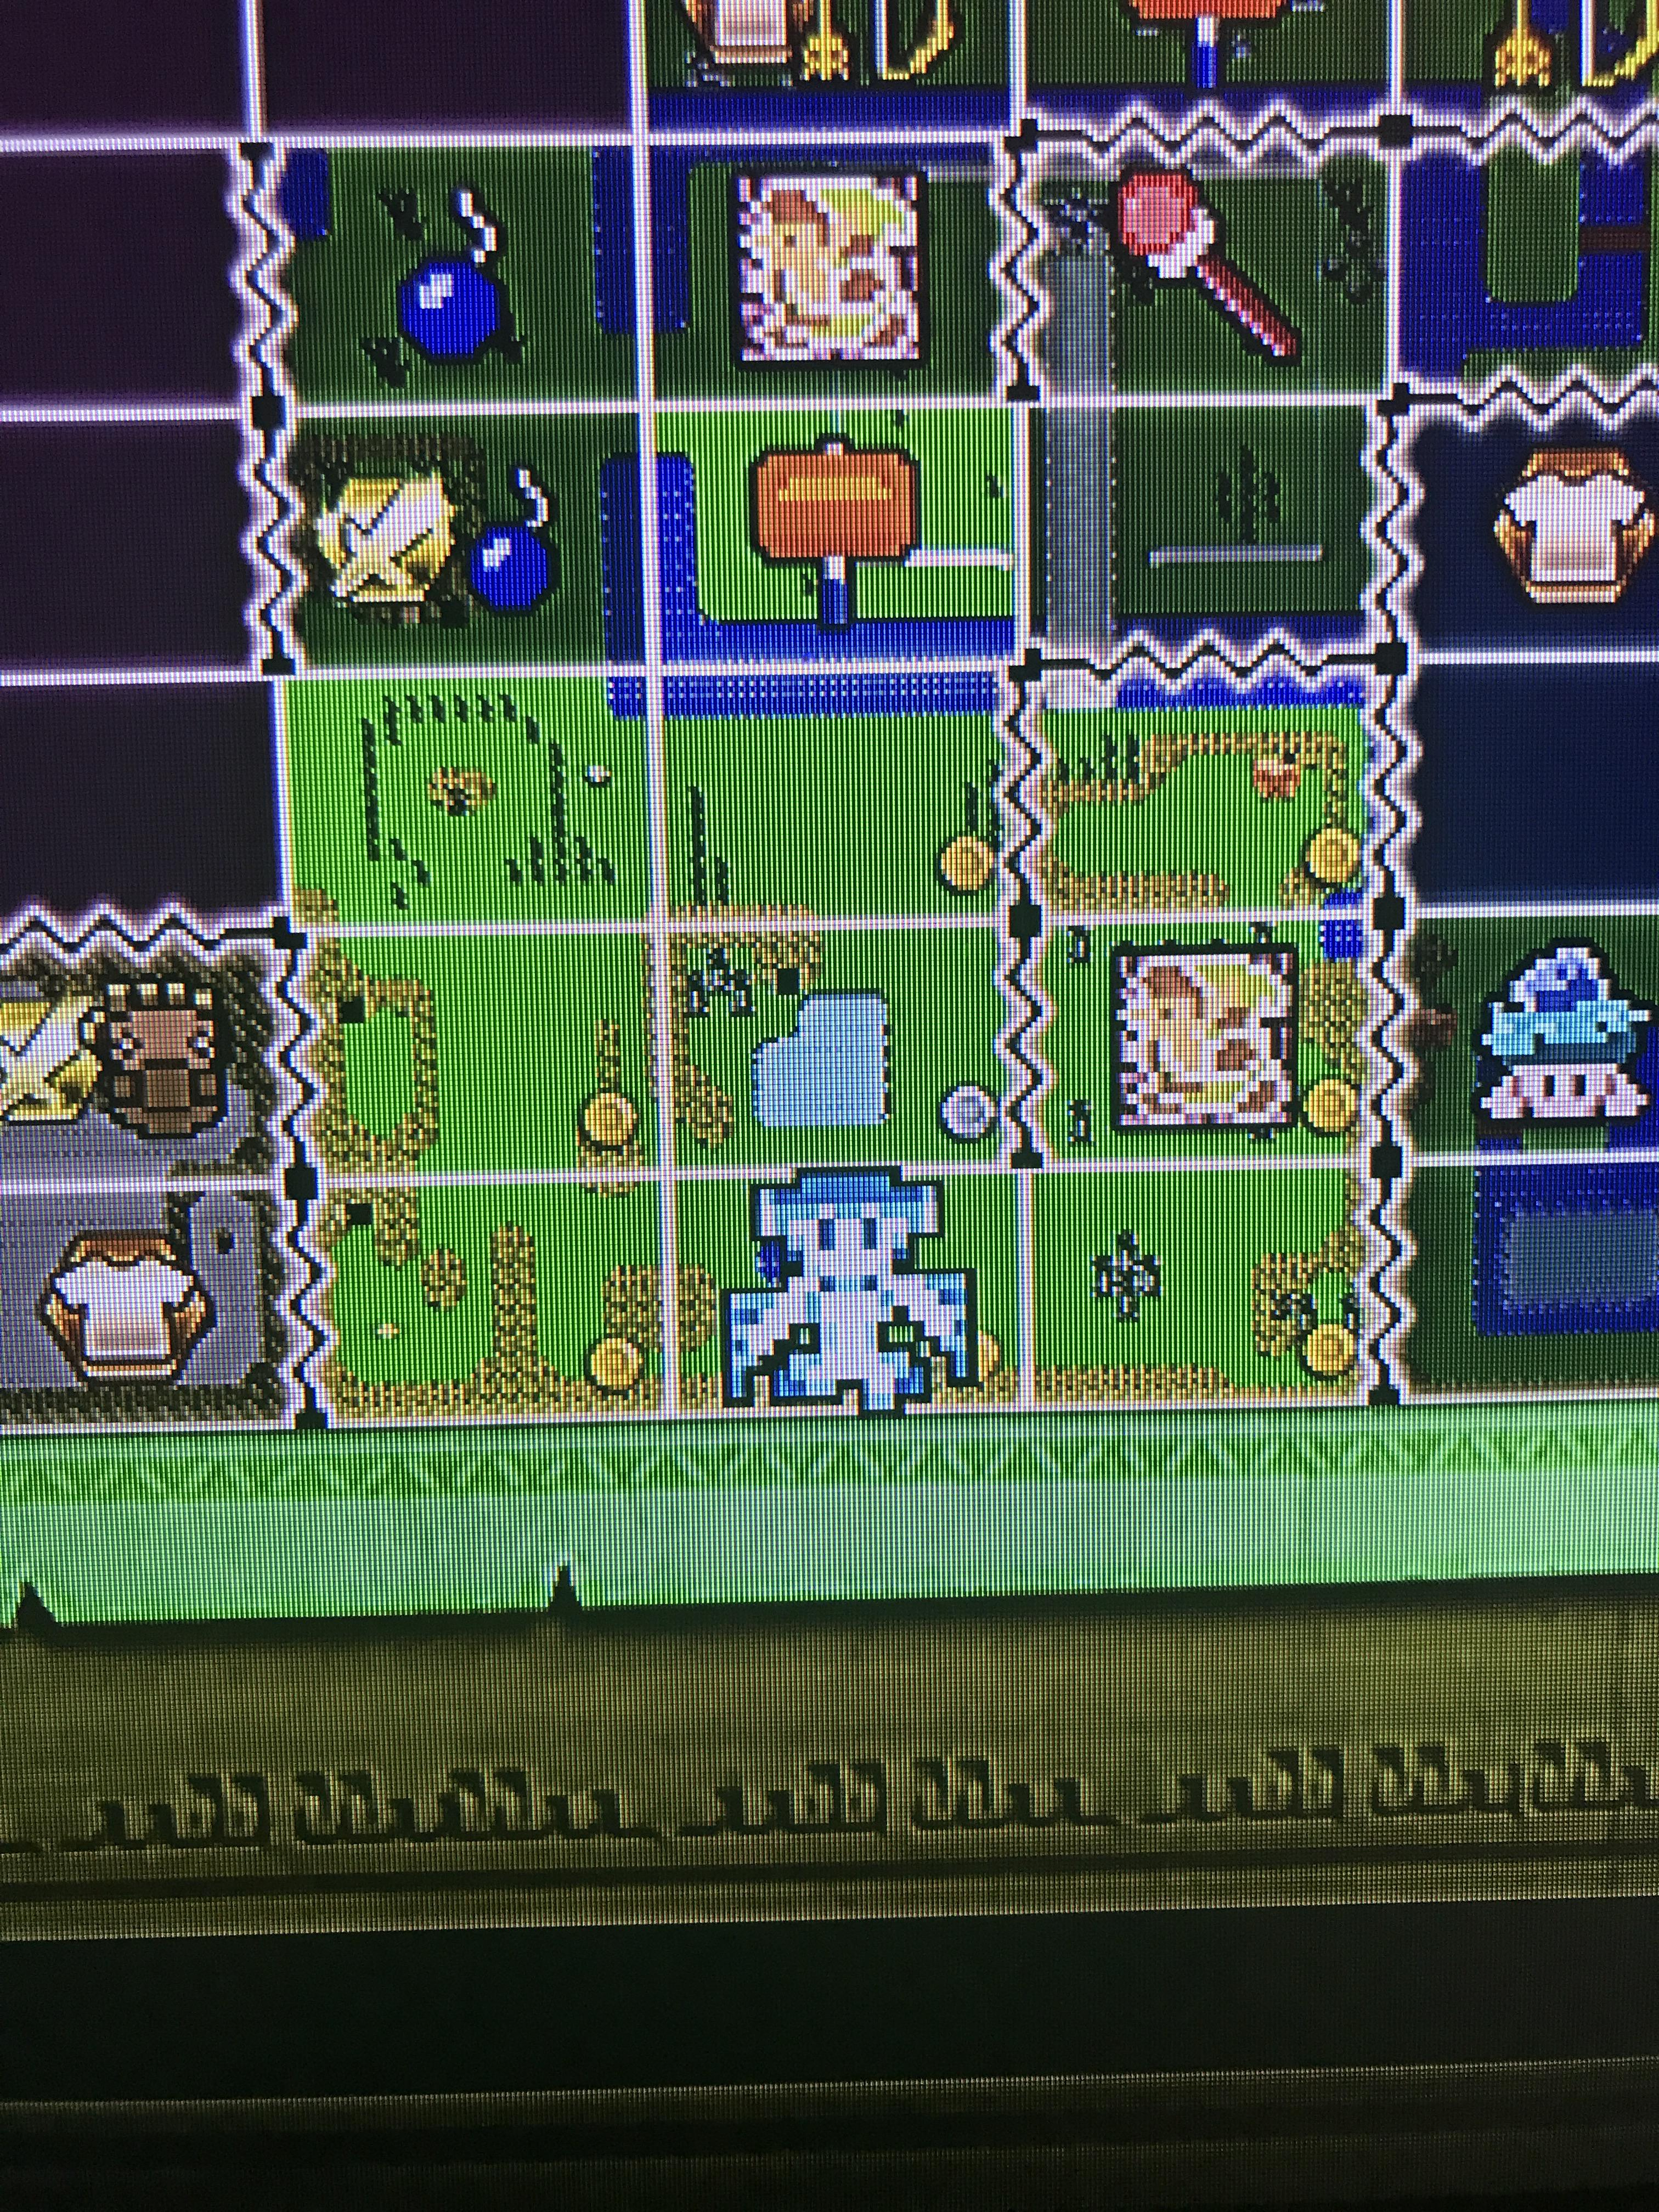 Master Quest Map Hyrule Warriors : master, quest, hyrule, warriors, Lorule, Theres, Battles, Proceed, Enemies, Hidden, Right, Items, Stuck., Anyone